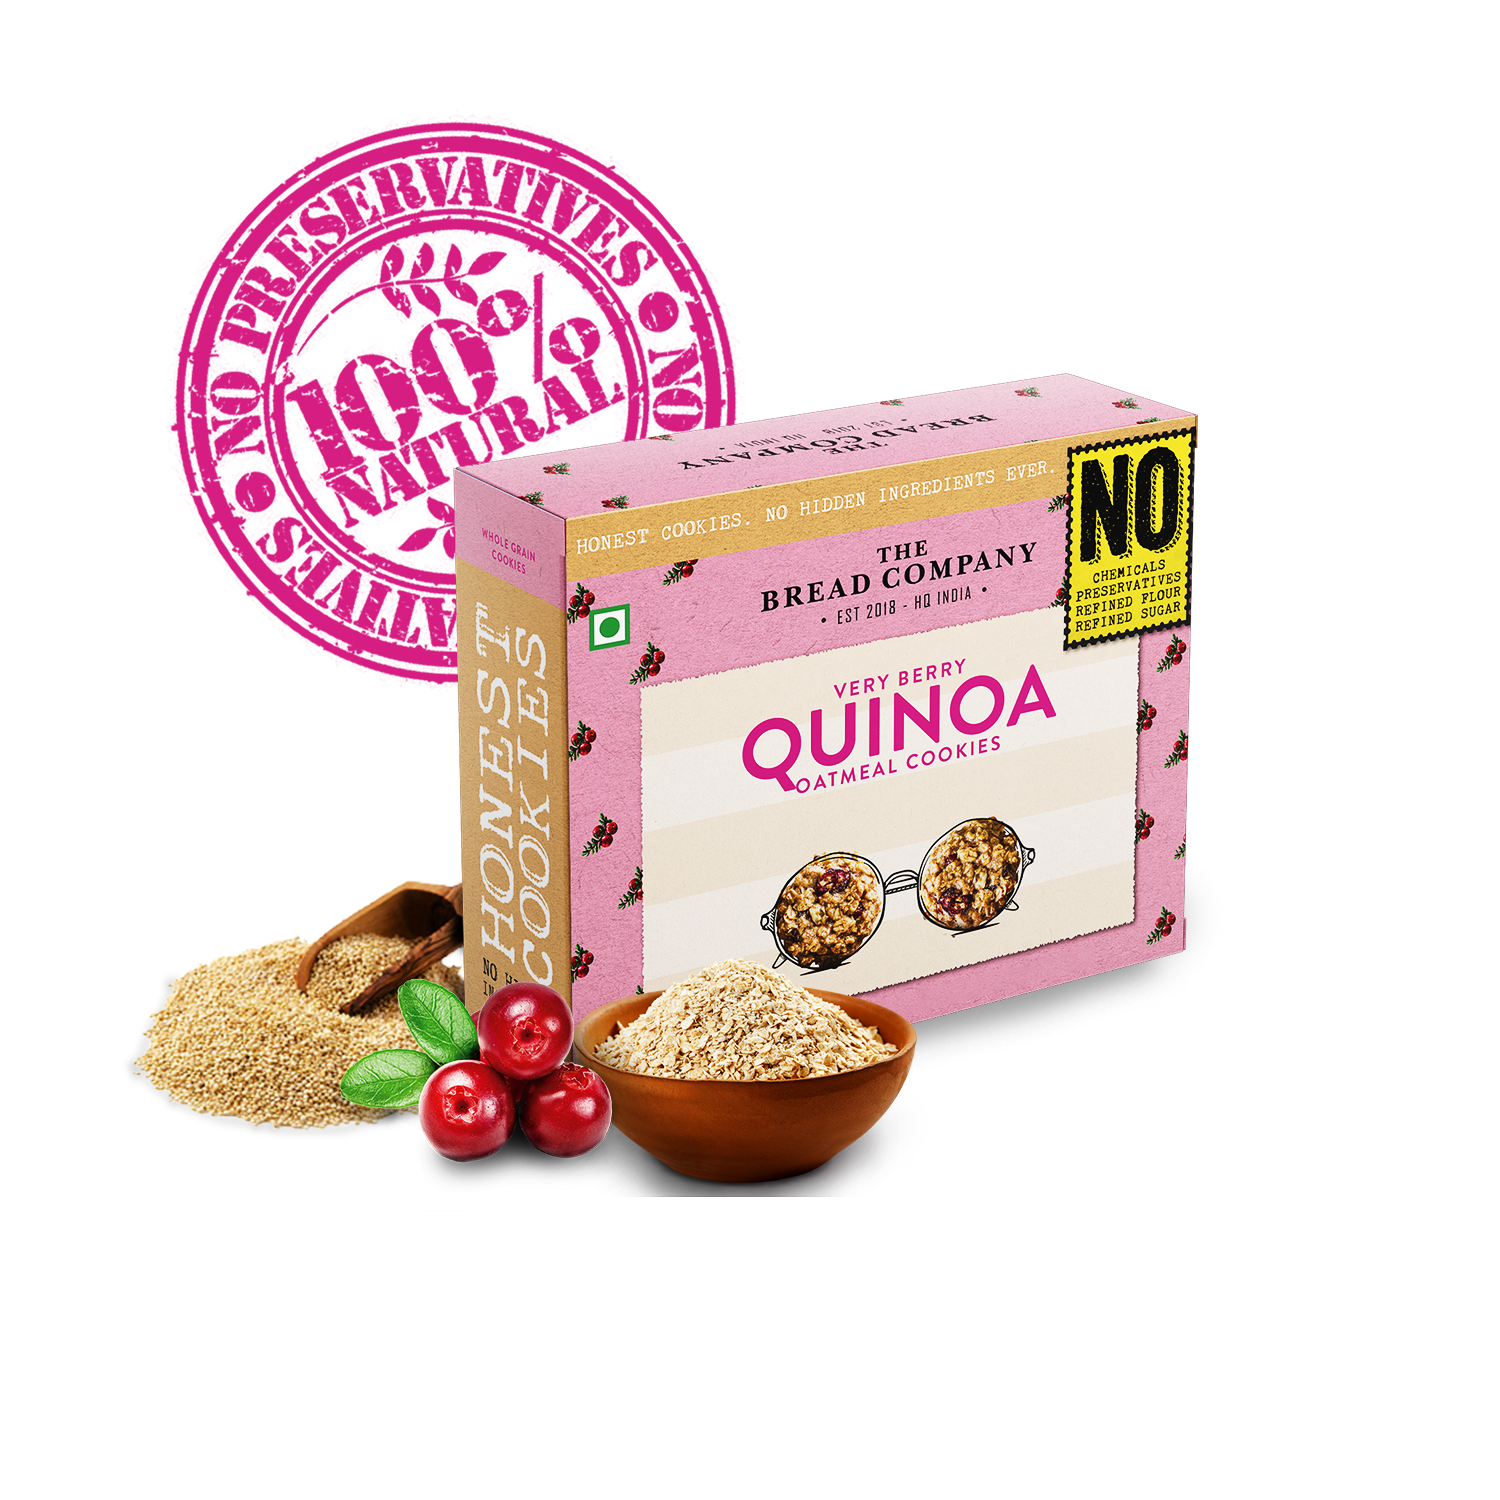 Very Berry Quinoa Oatmeal cookies - 150 gms